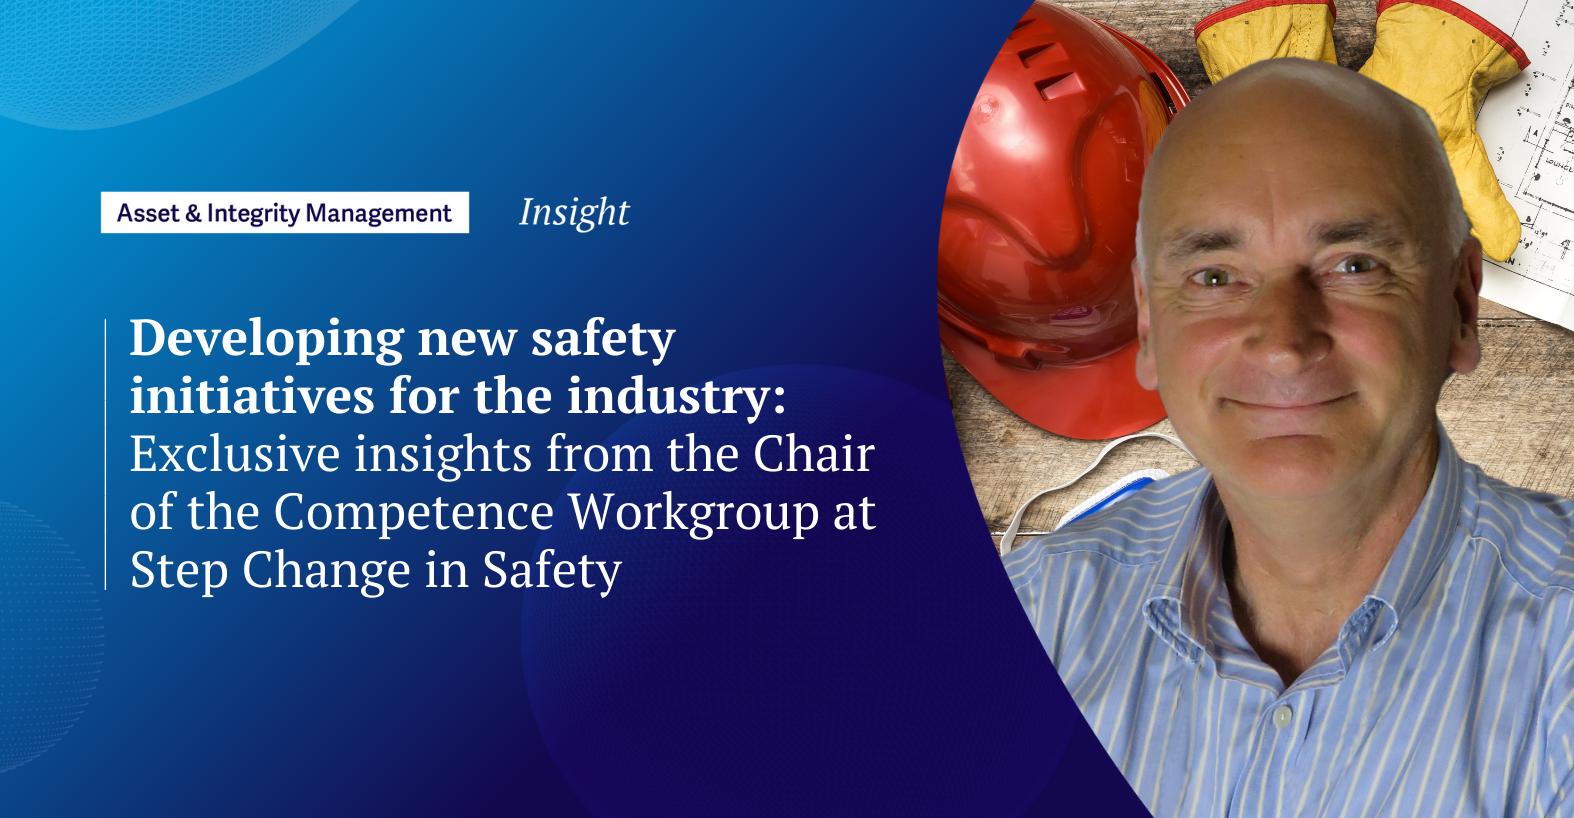 Developing new safety initiatives for the industry: Exclusive insights from the Chair of the Competence Workgroup at Step Change in Safety